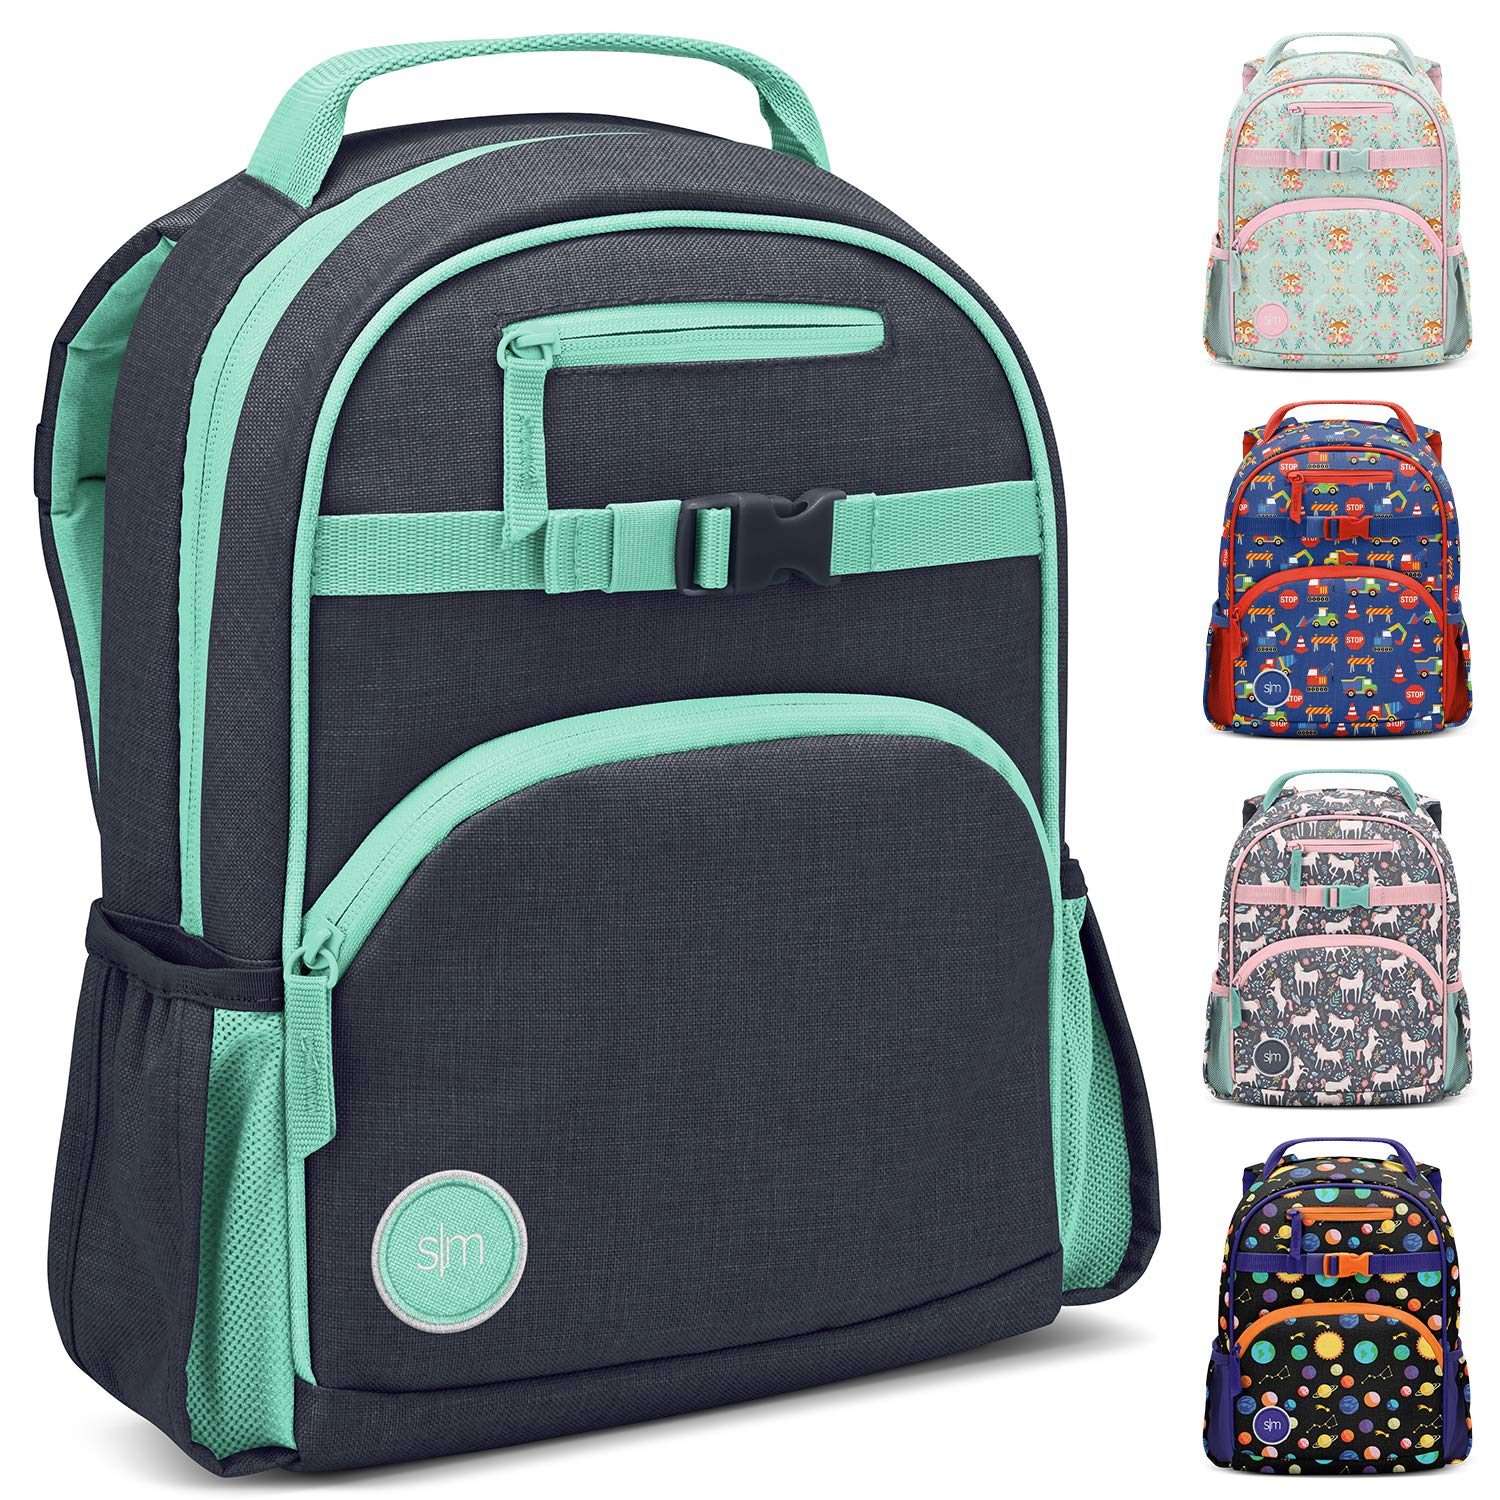 Simple Modern Kids' Fletcher Backpack, Bermuda Deep, 7 Liter